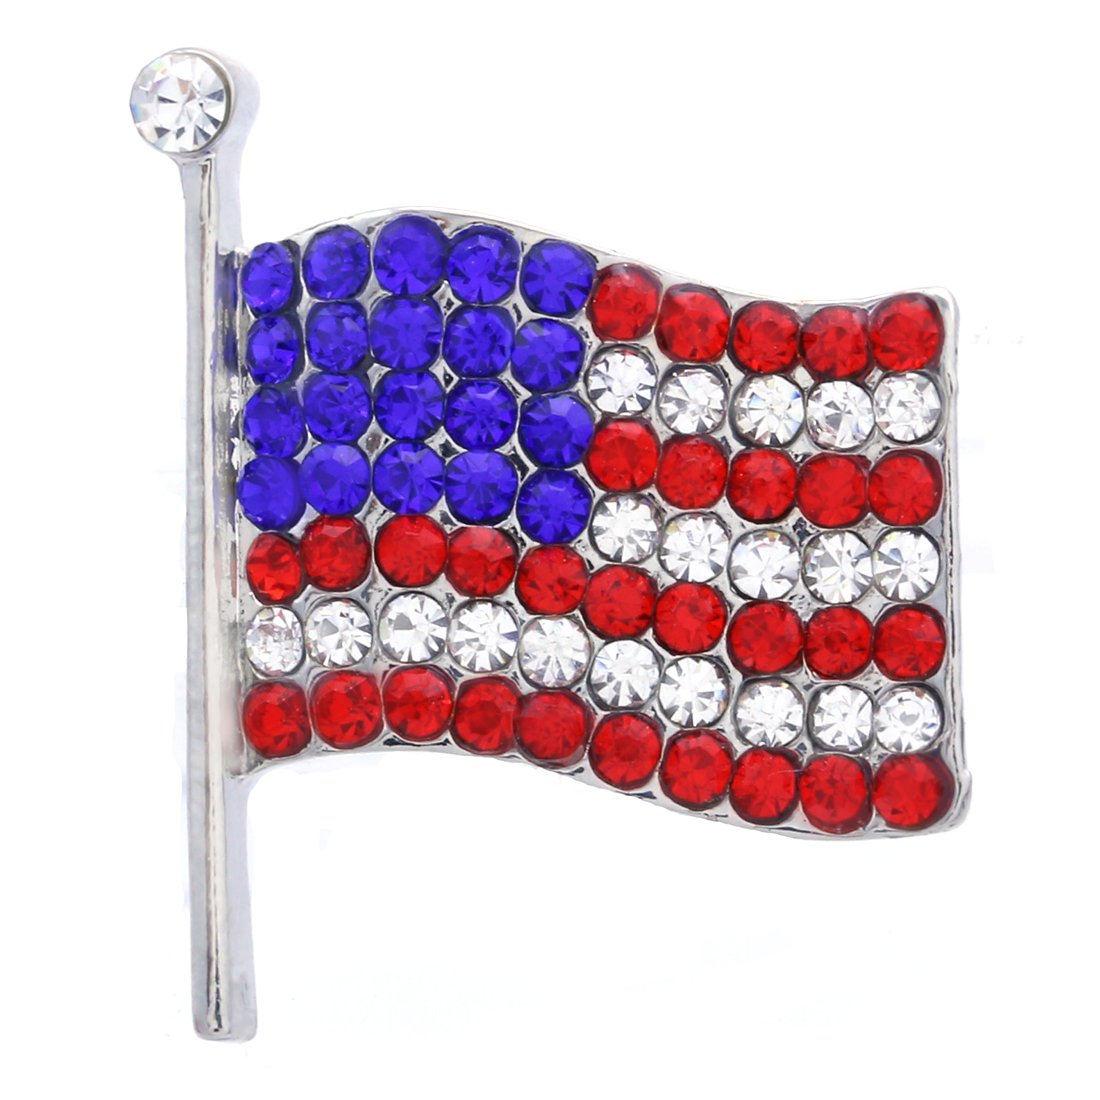 Soulbreezecollection American Flag Star USA Pin Brooch 4th of July Independence Day Jewelry (Small)